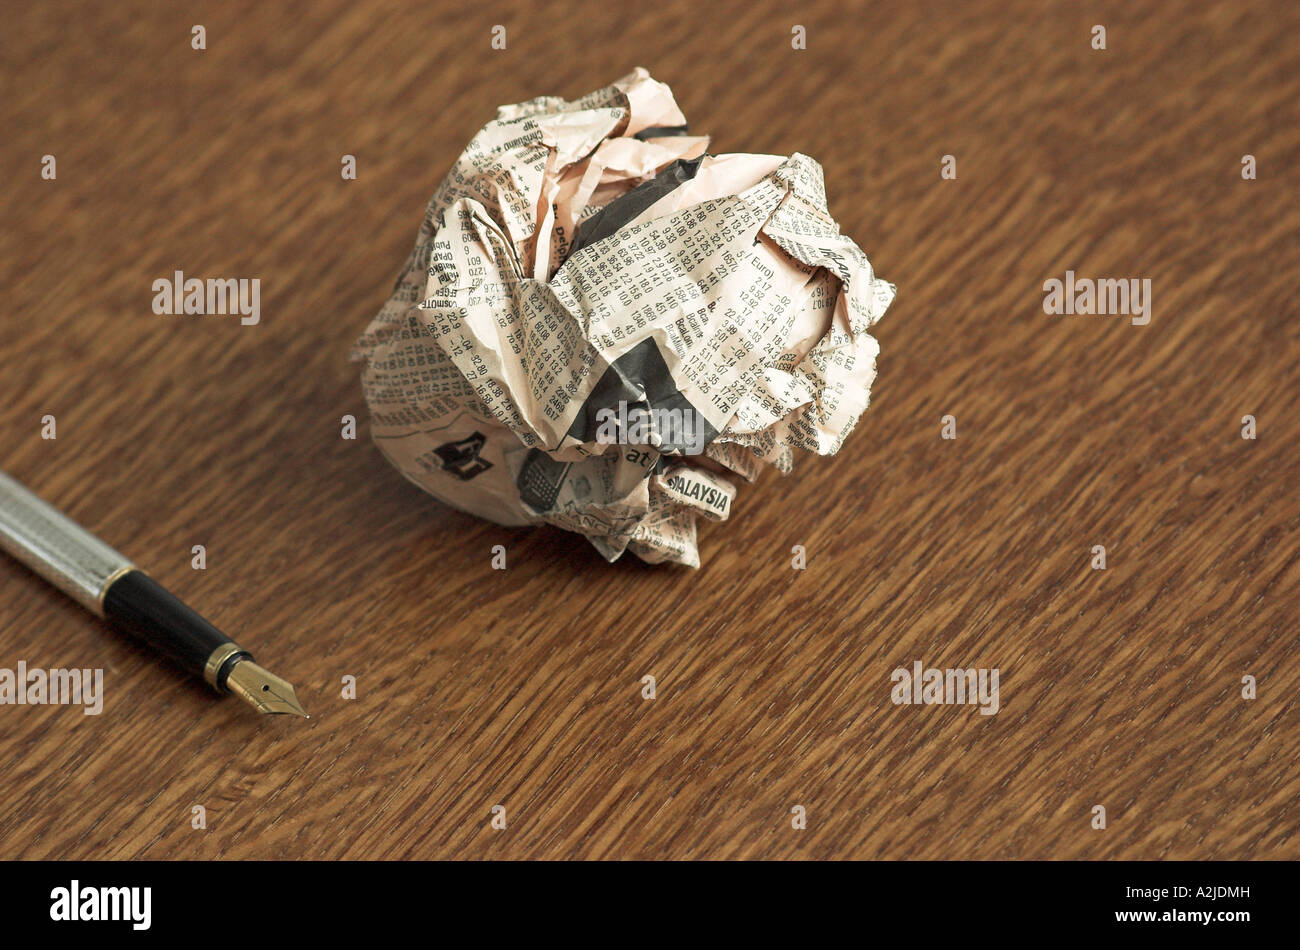 Scrunched ball of newspaper and fountain pen on table - Stock Image